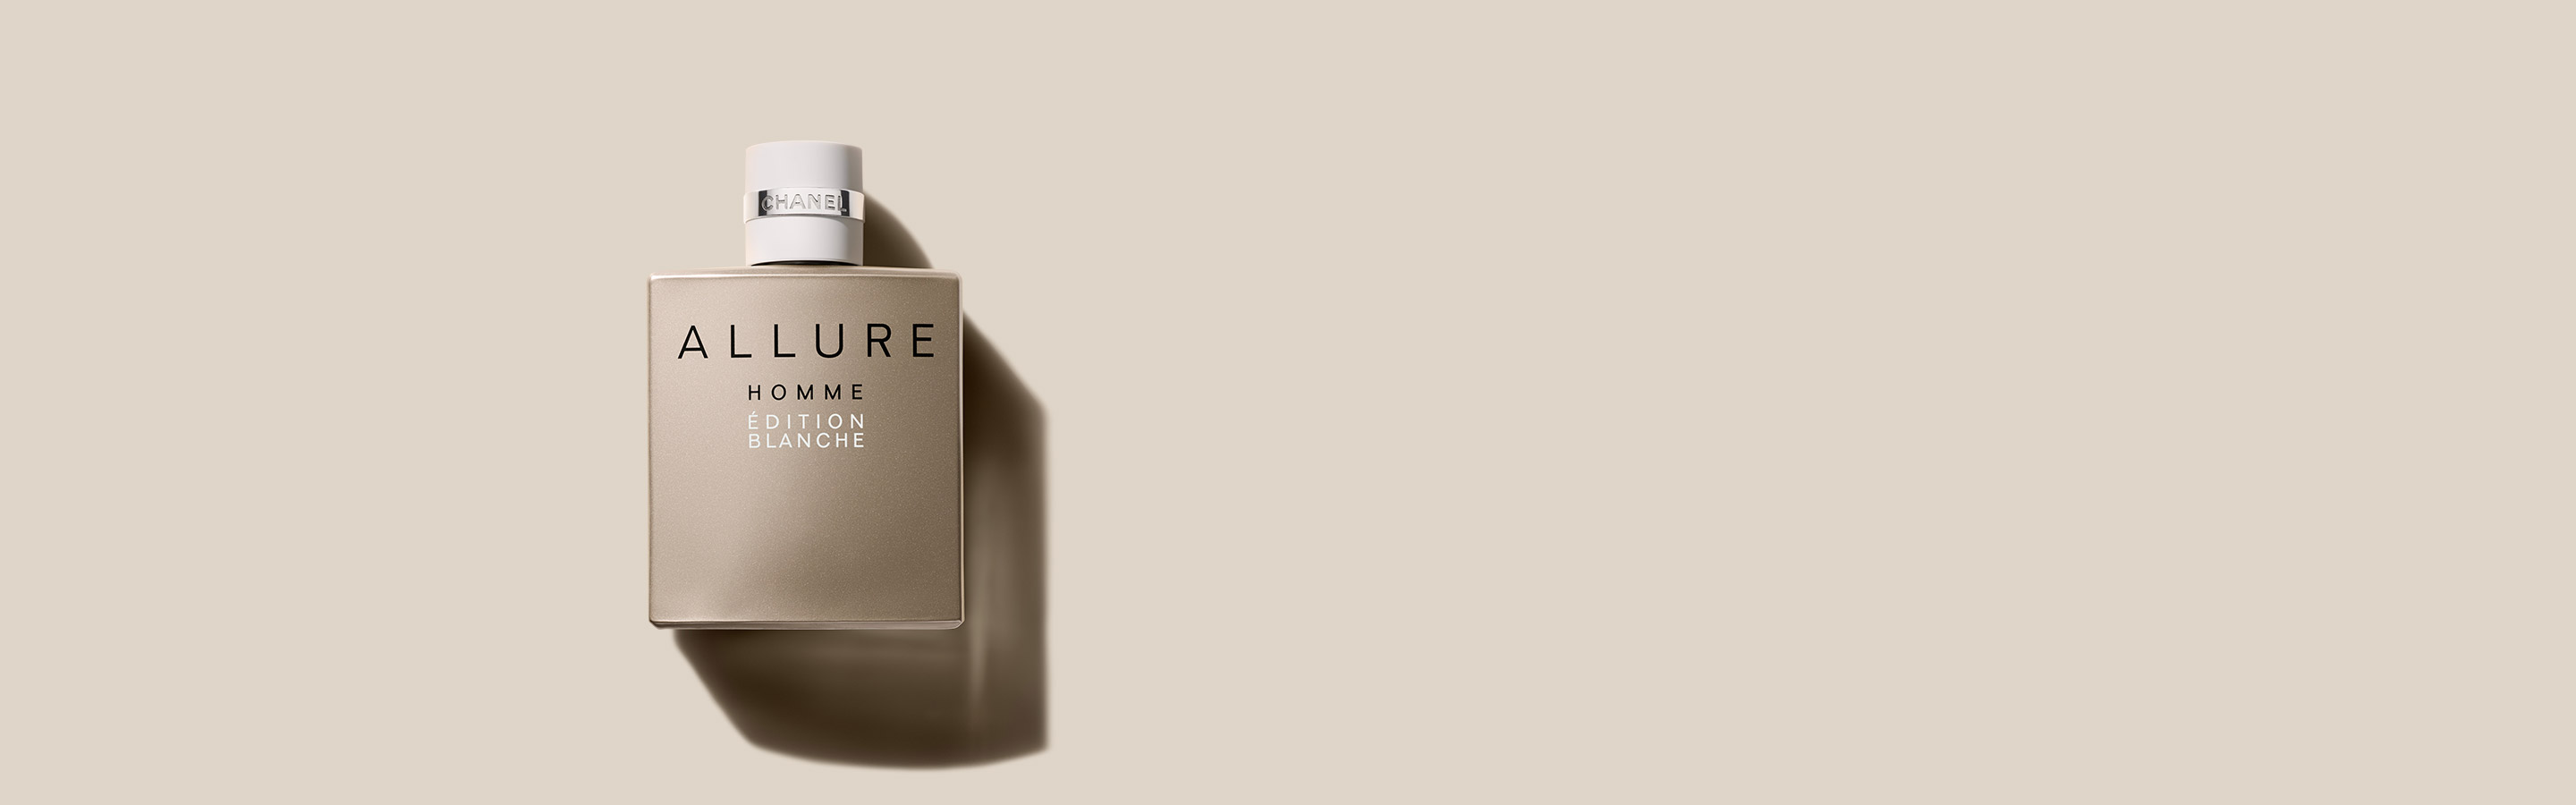 Allure Homme Édition Blanche - 香水 | CHANEL